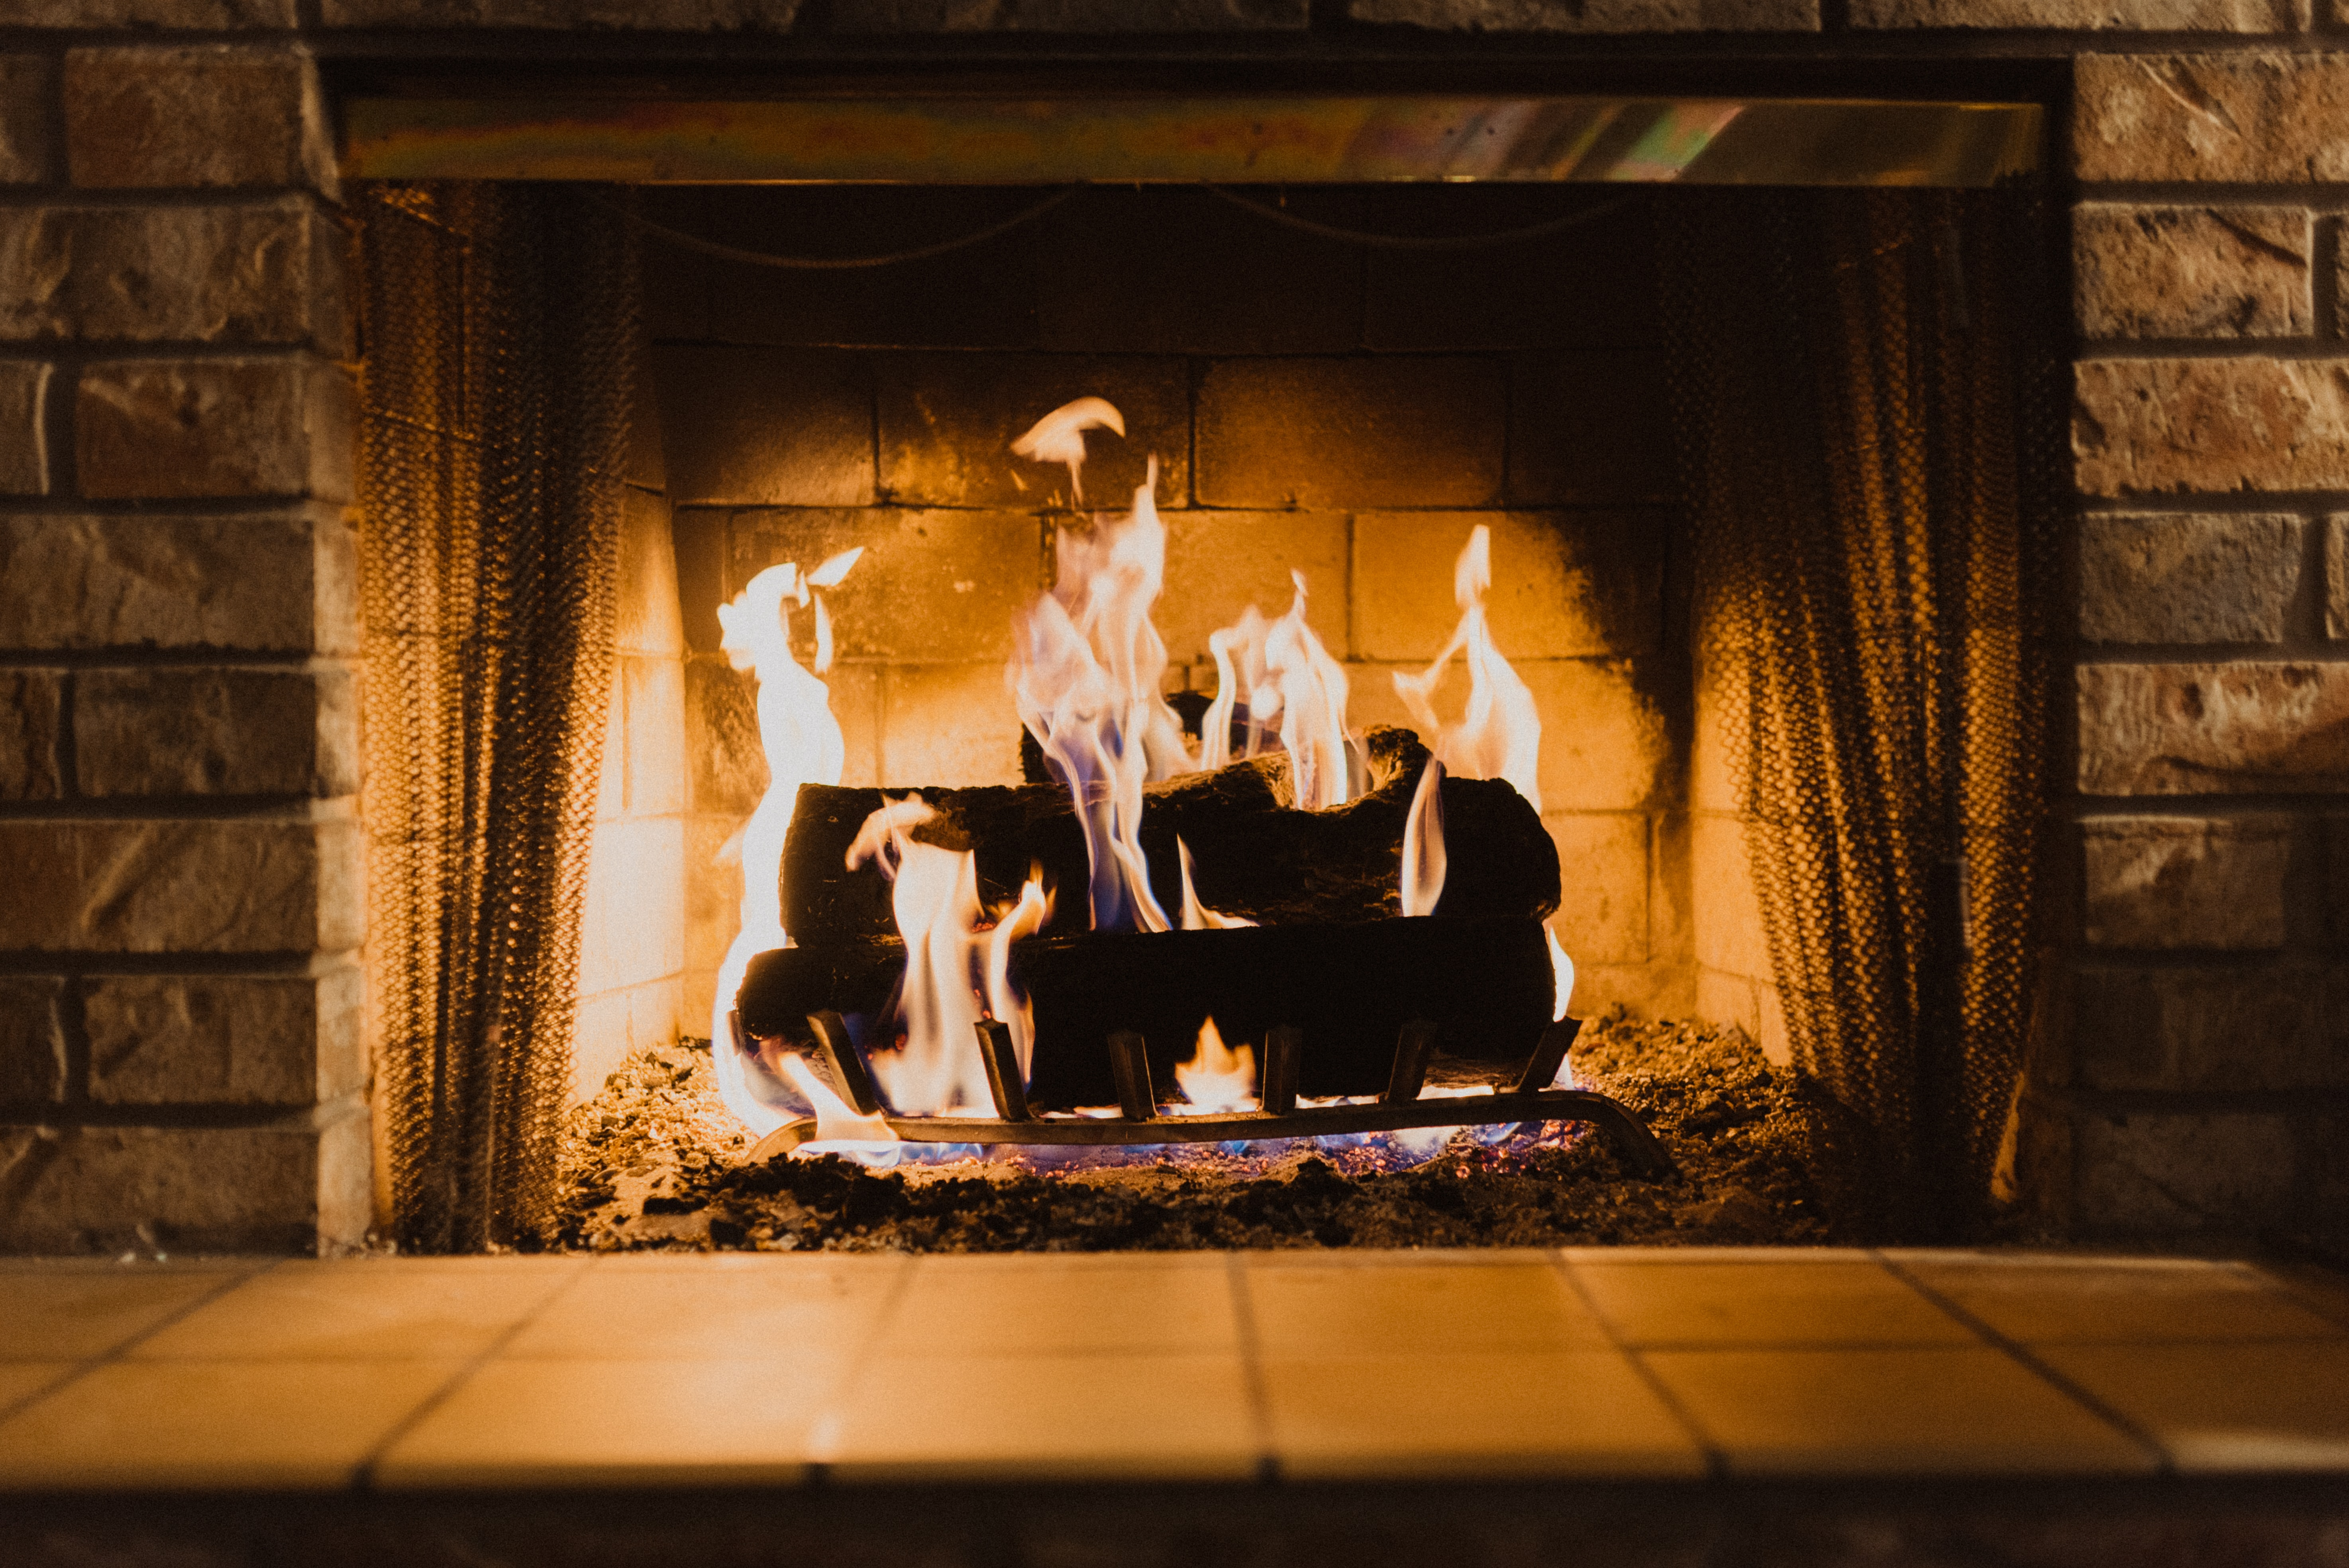 A fireplace is a good way of cooking without power